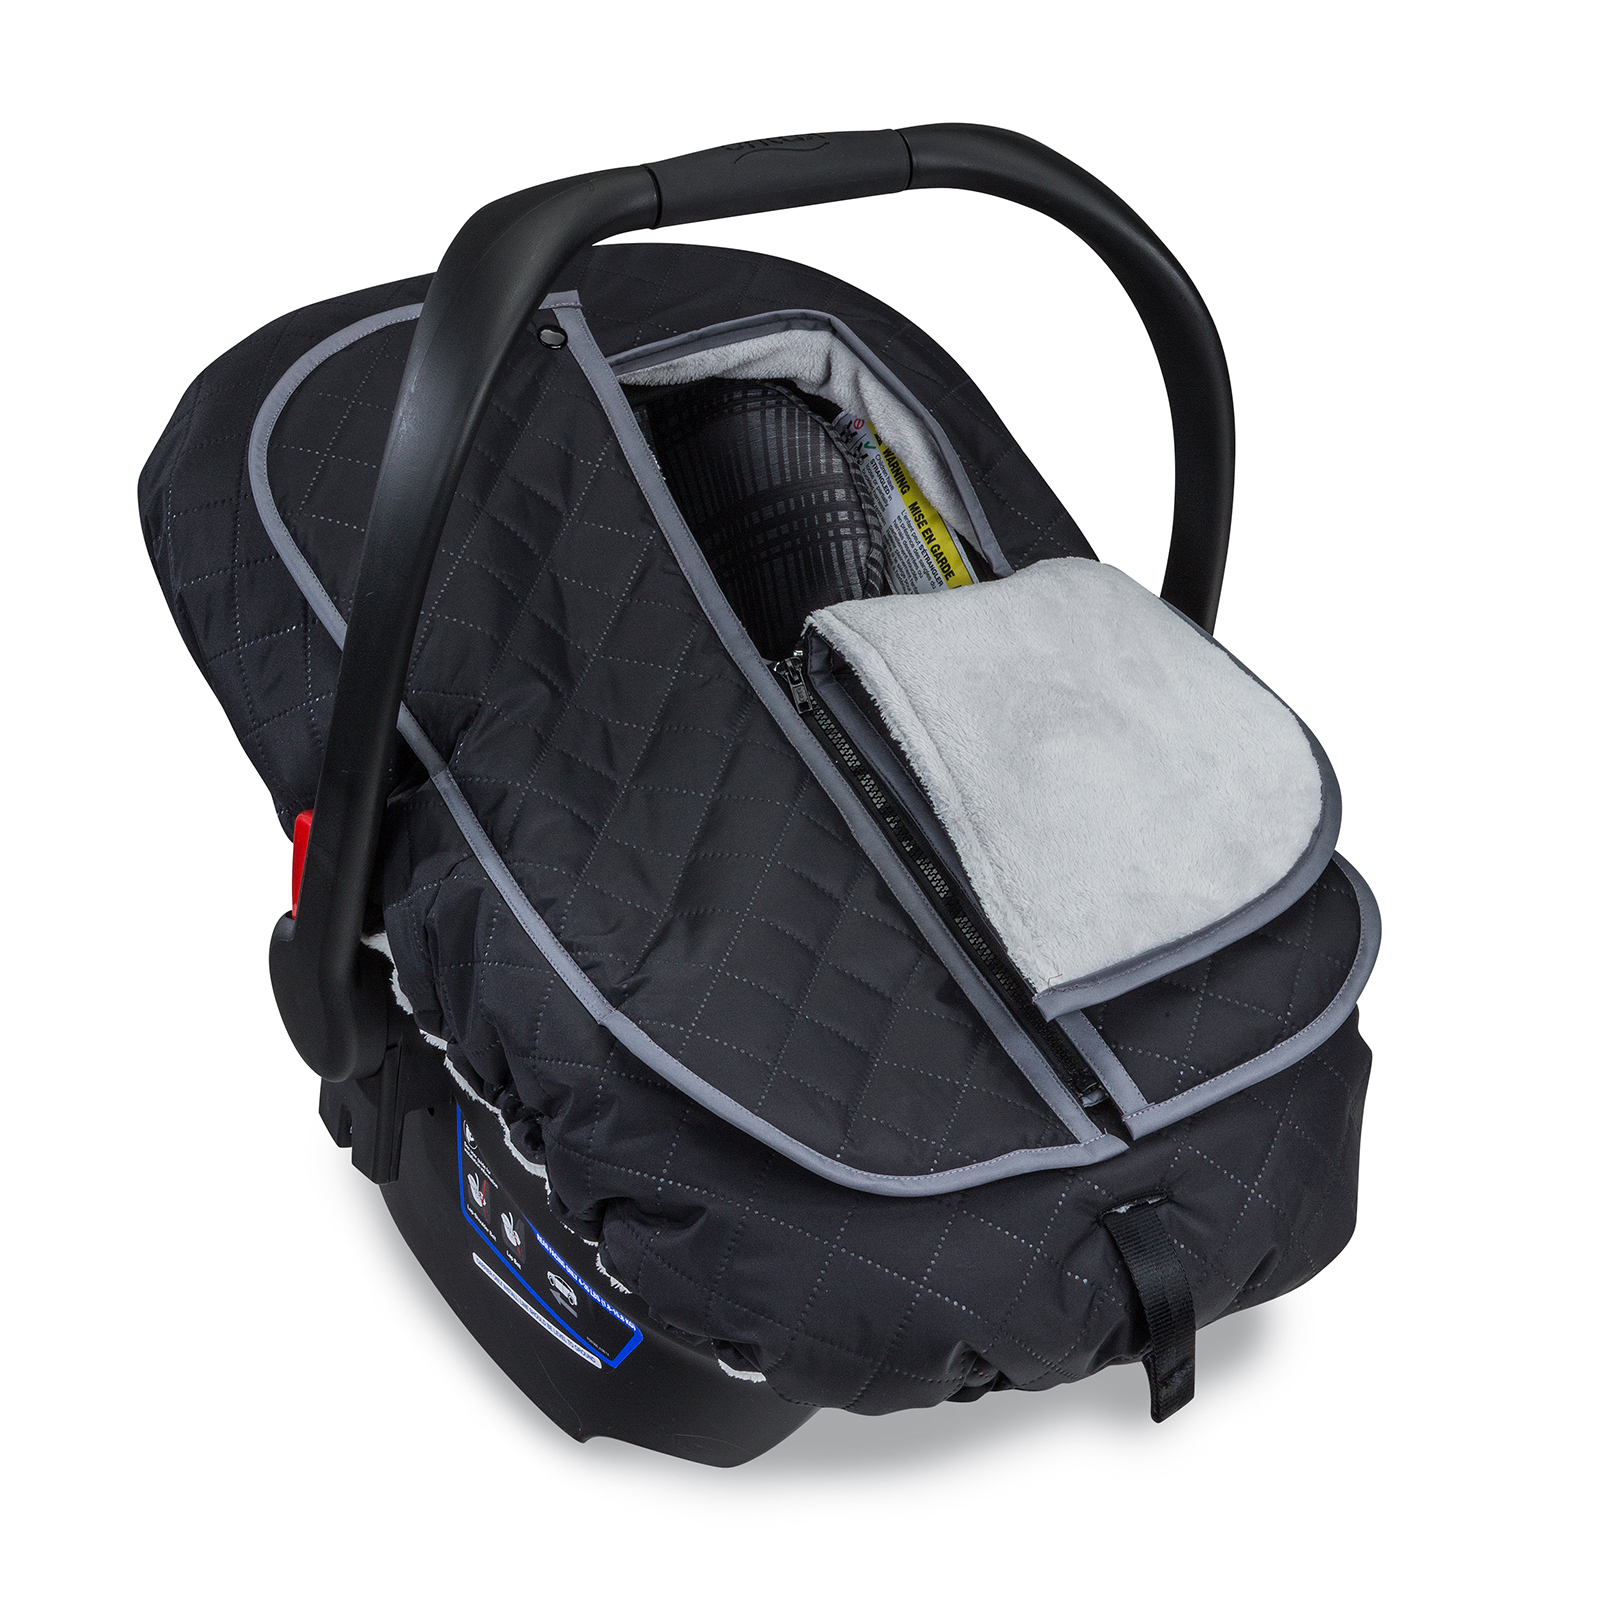 britax b warm car seat cover polar car seat accessories at hayneedle. Black Bedroom Furniture Sets. Home Design Ideas